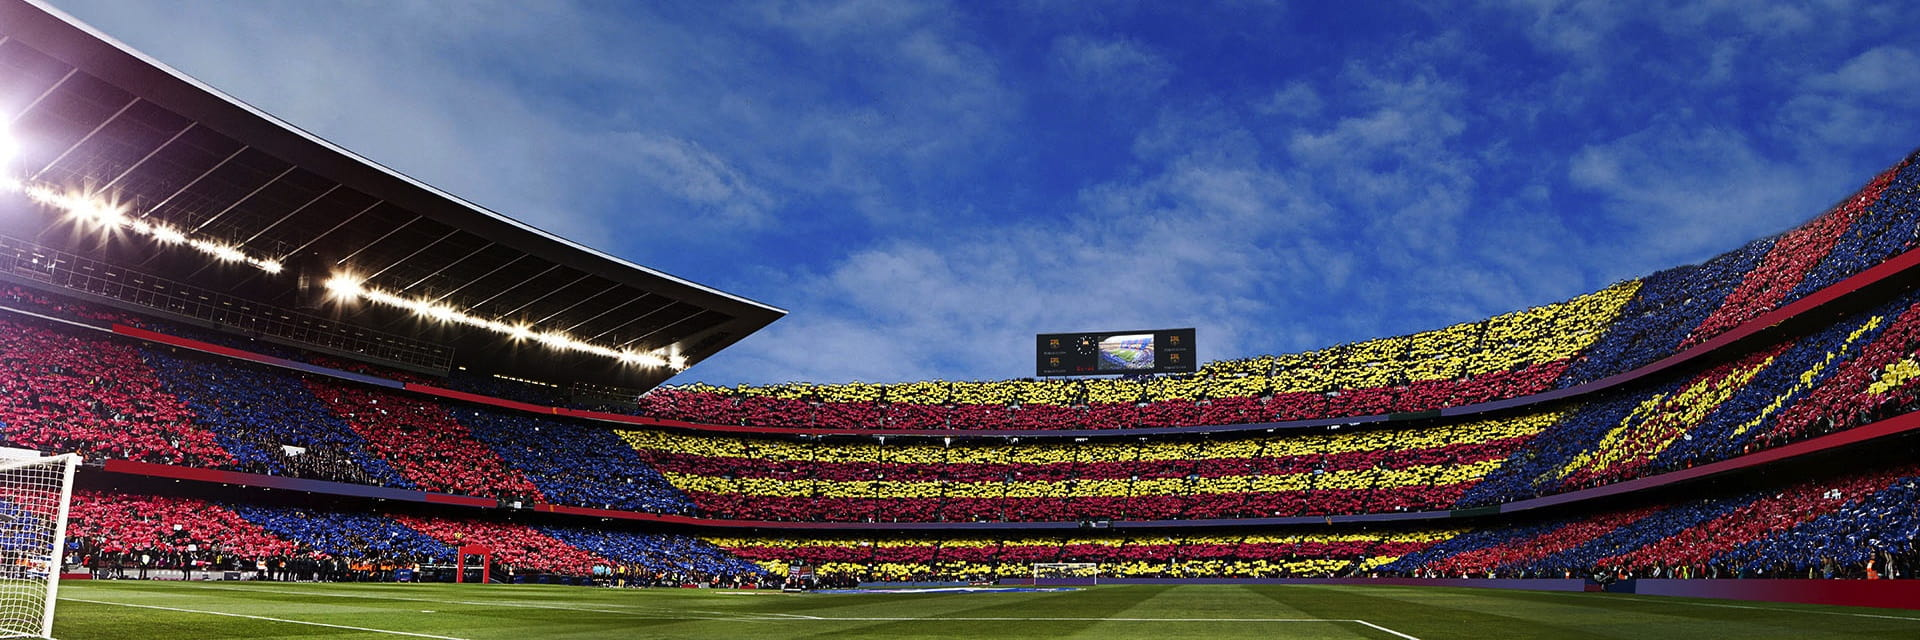 FC Barcelona - Real Valladolid, 2 Oktoberum 21:15